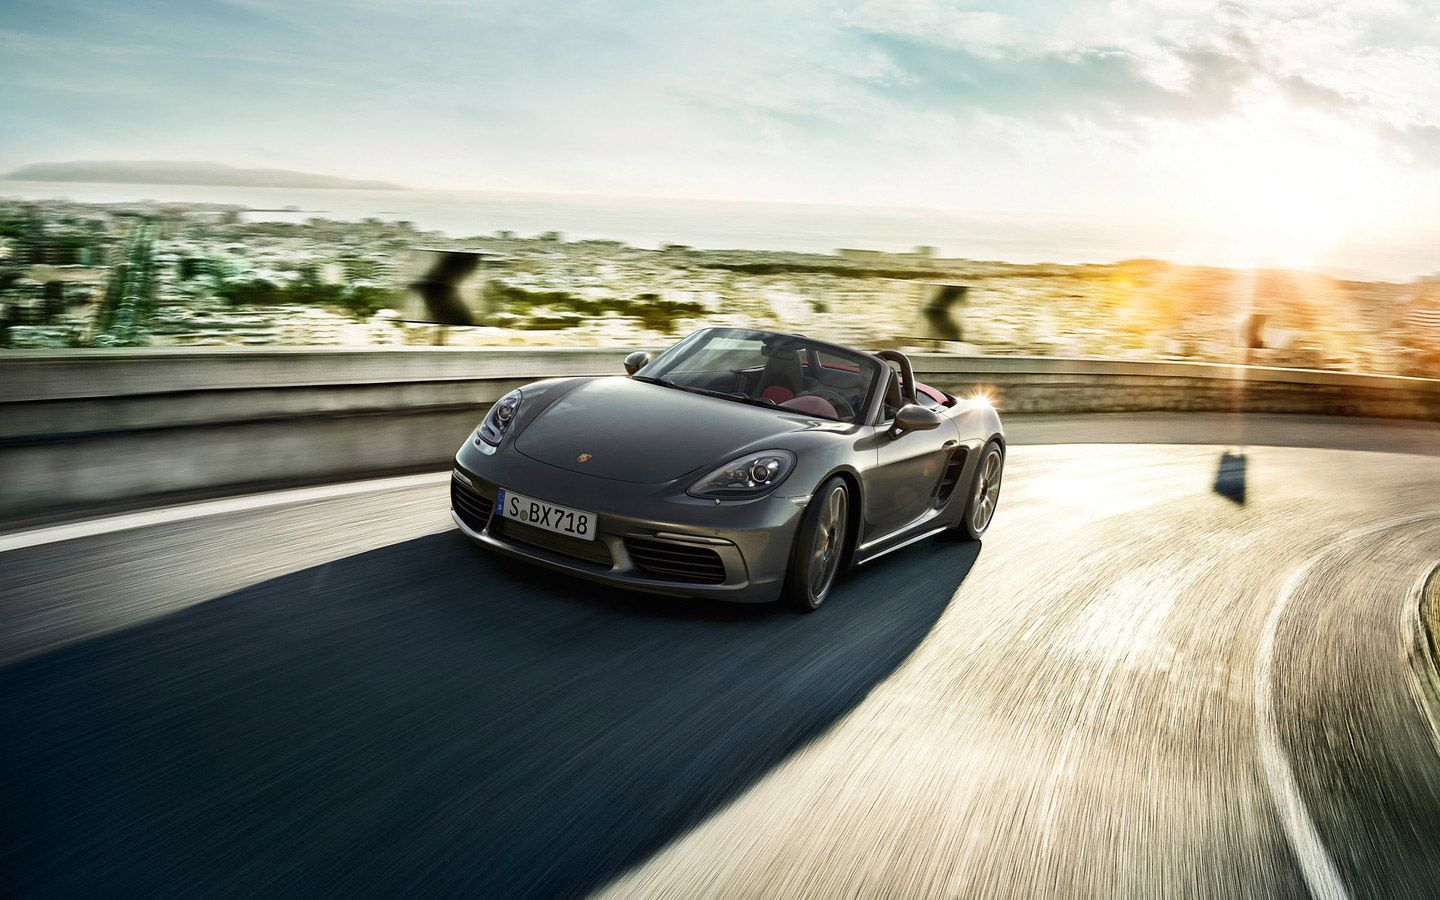 Porsche restructures 718 Boxster 20 years after its debut: http://www.playmagazine.info/718-boxster-porsche-restructures-mid-engine-roadster-after-20-year-debut/